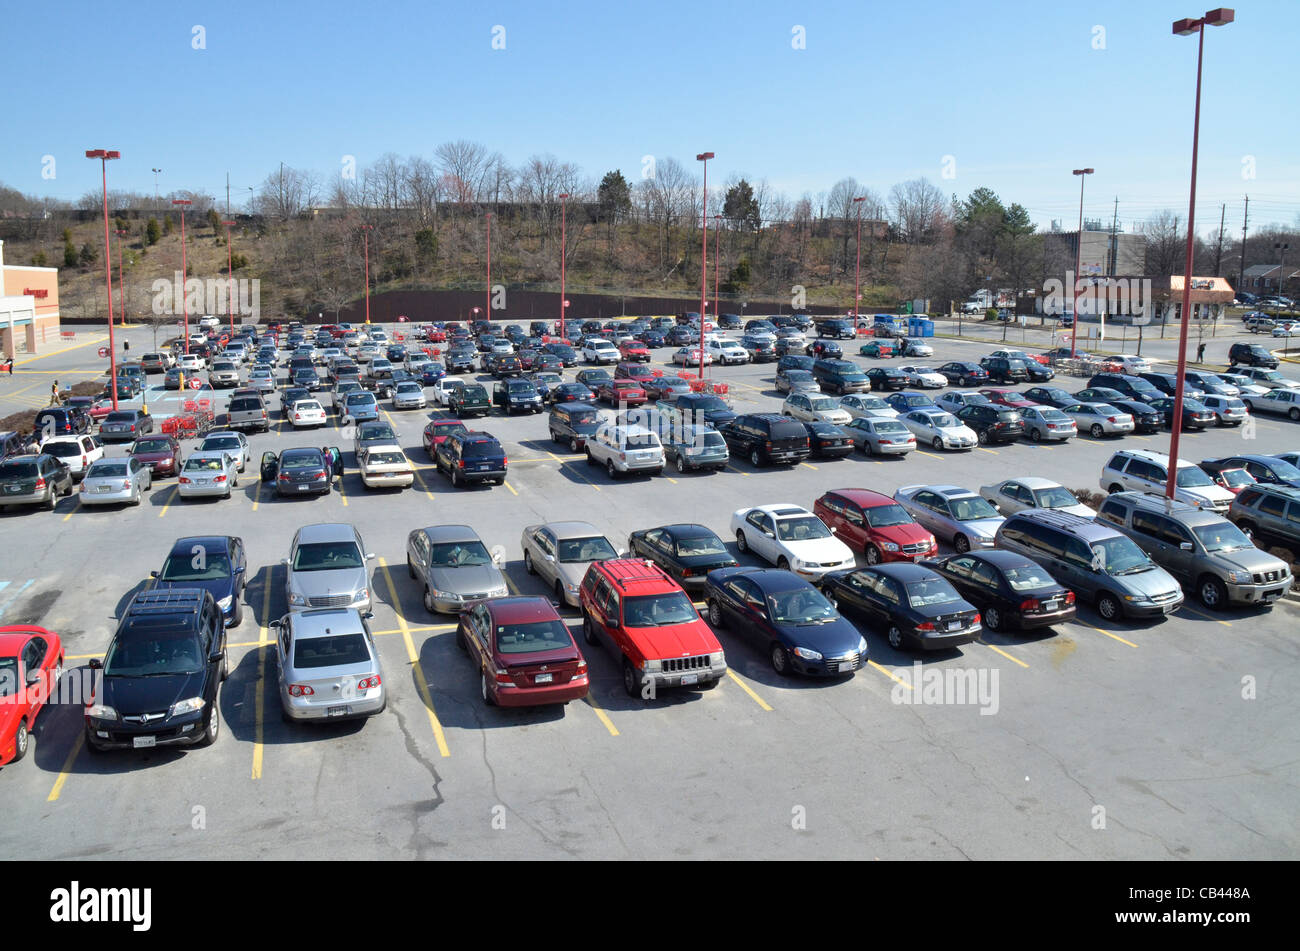 Parking Lot Full Of New Cars